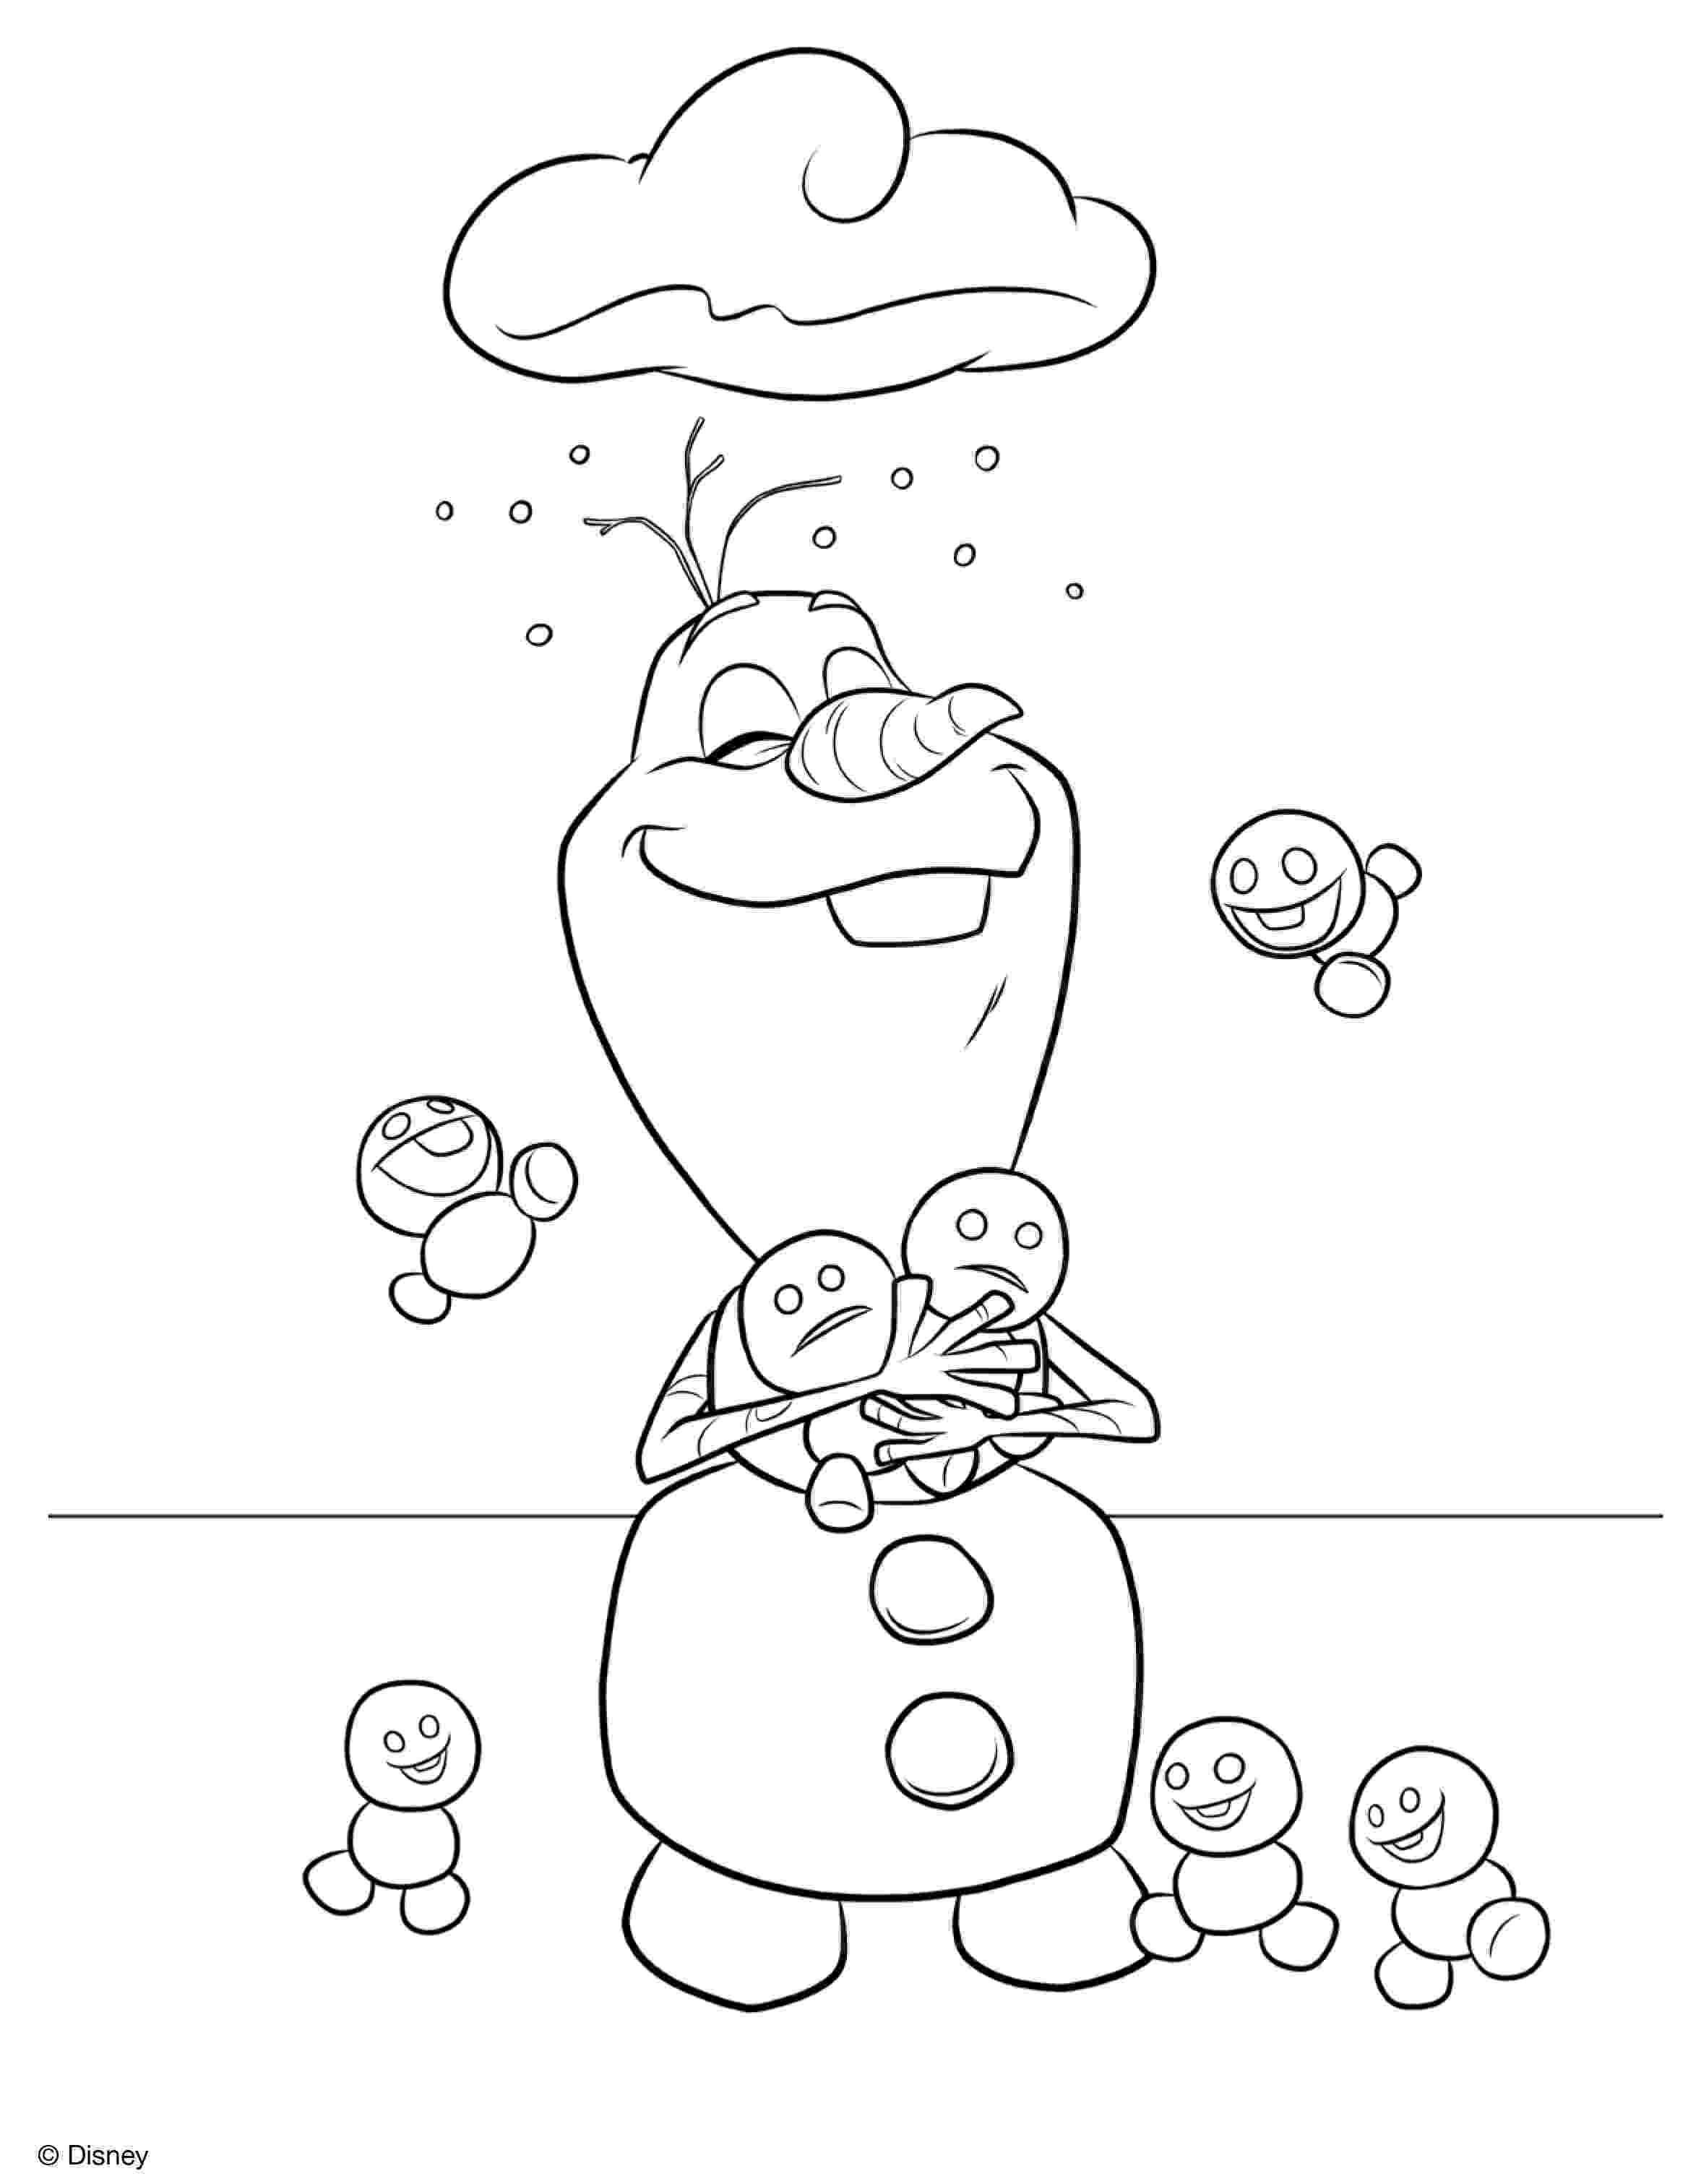 olaf pictures to print frozens olaf coloring pages best coloring pages for kids olaf pictures to print